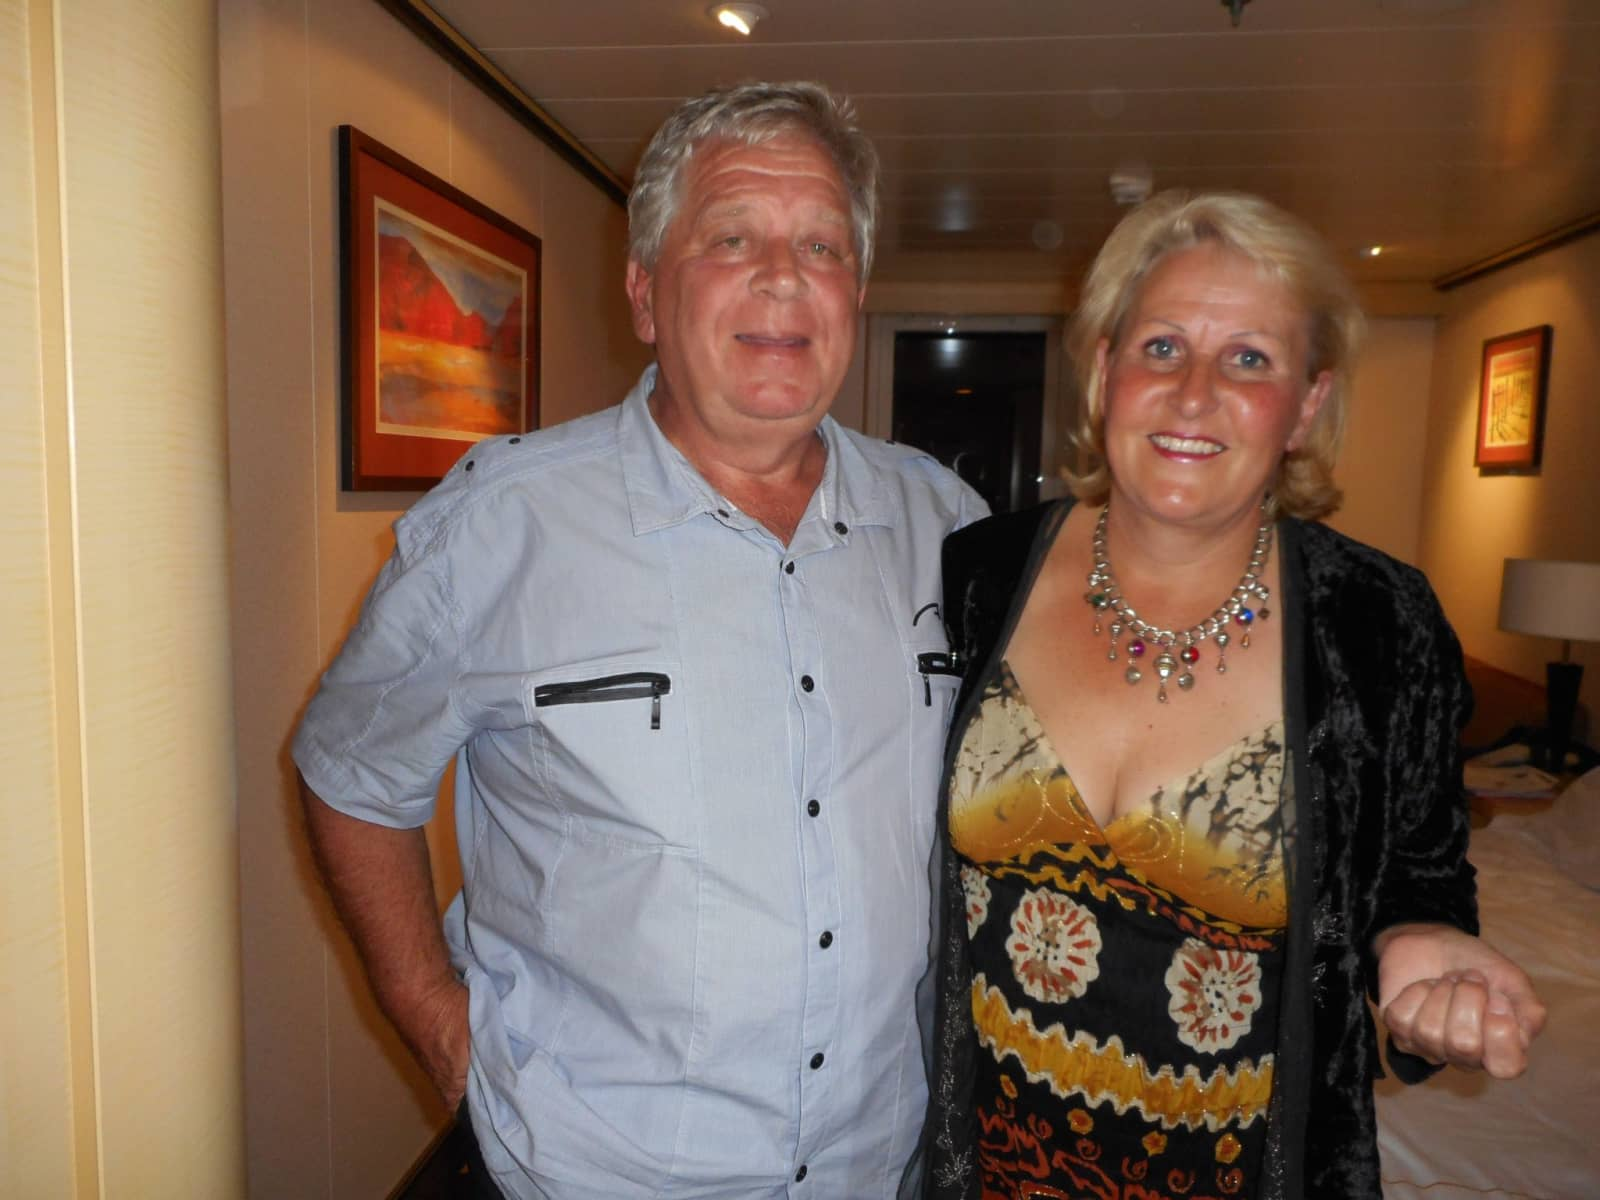 Simon & Astrid from Bundaberg, Queensland, Australia